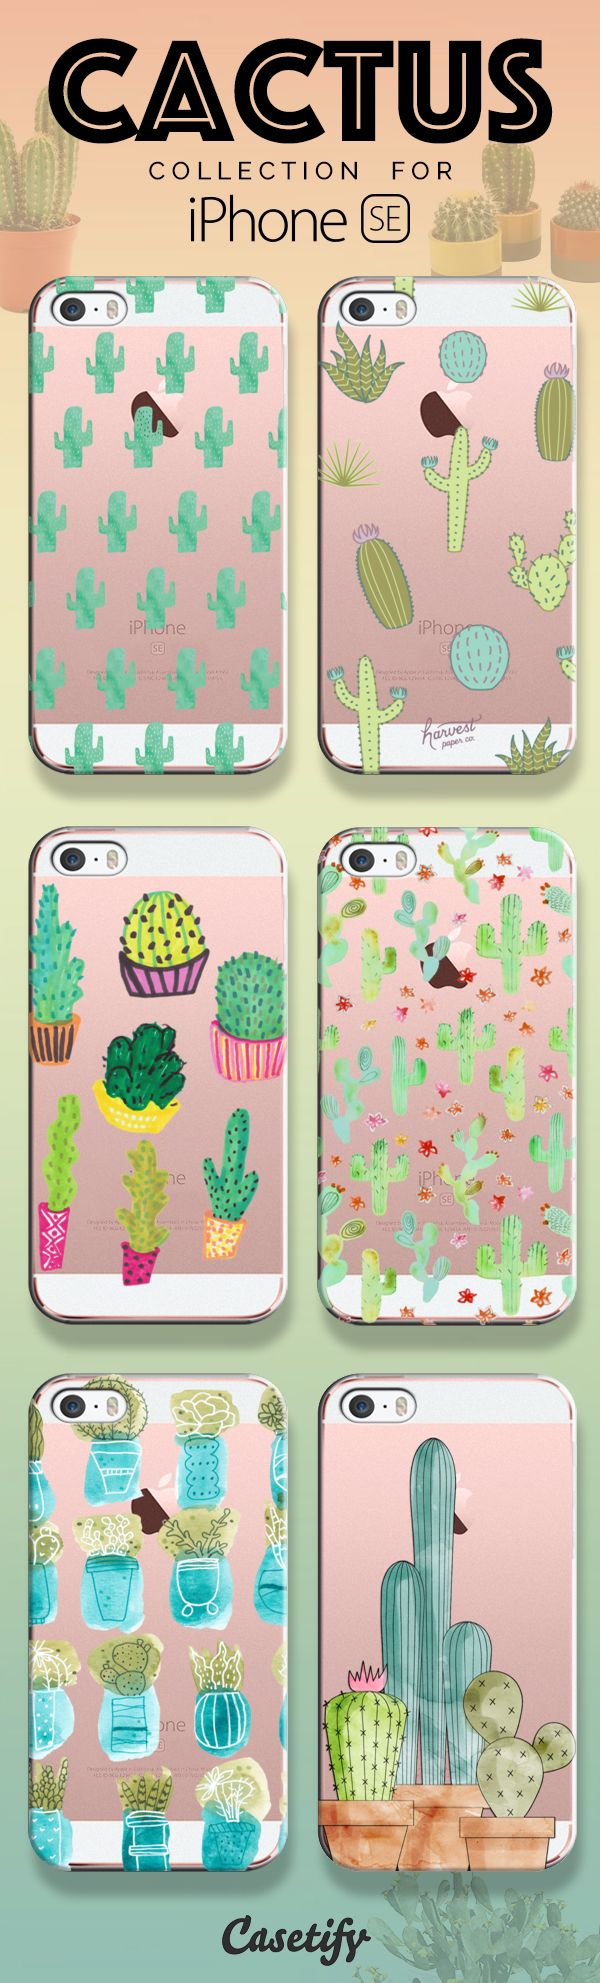 Prickly on the outside, Soothing on the inside. Take a look at our cactus collection for the new iPhone SE now! https://www.casetify.com/search?keyword=cactus | @casetify